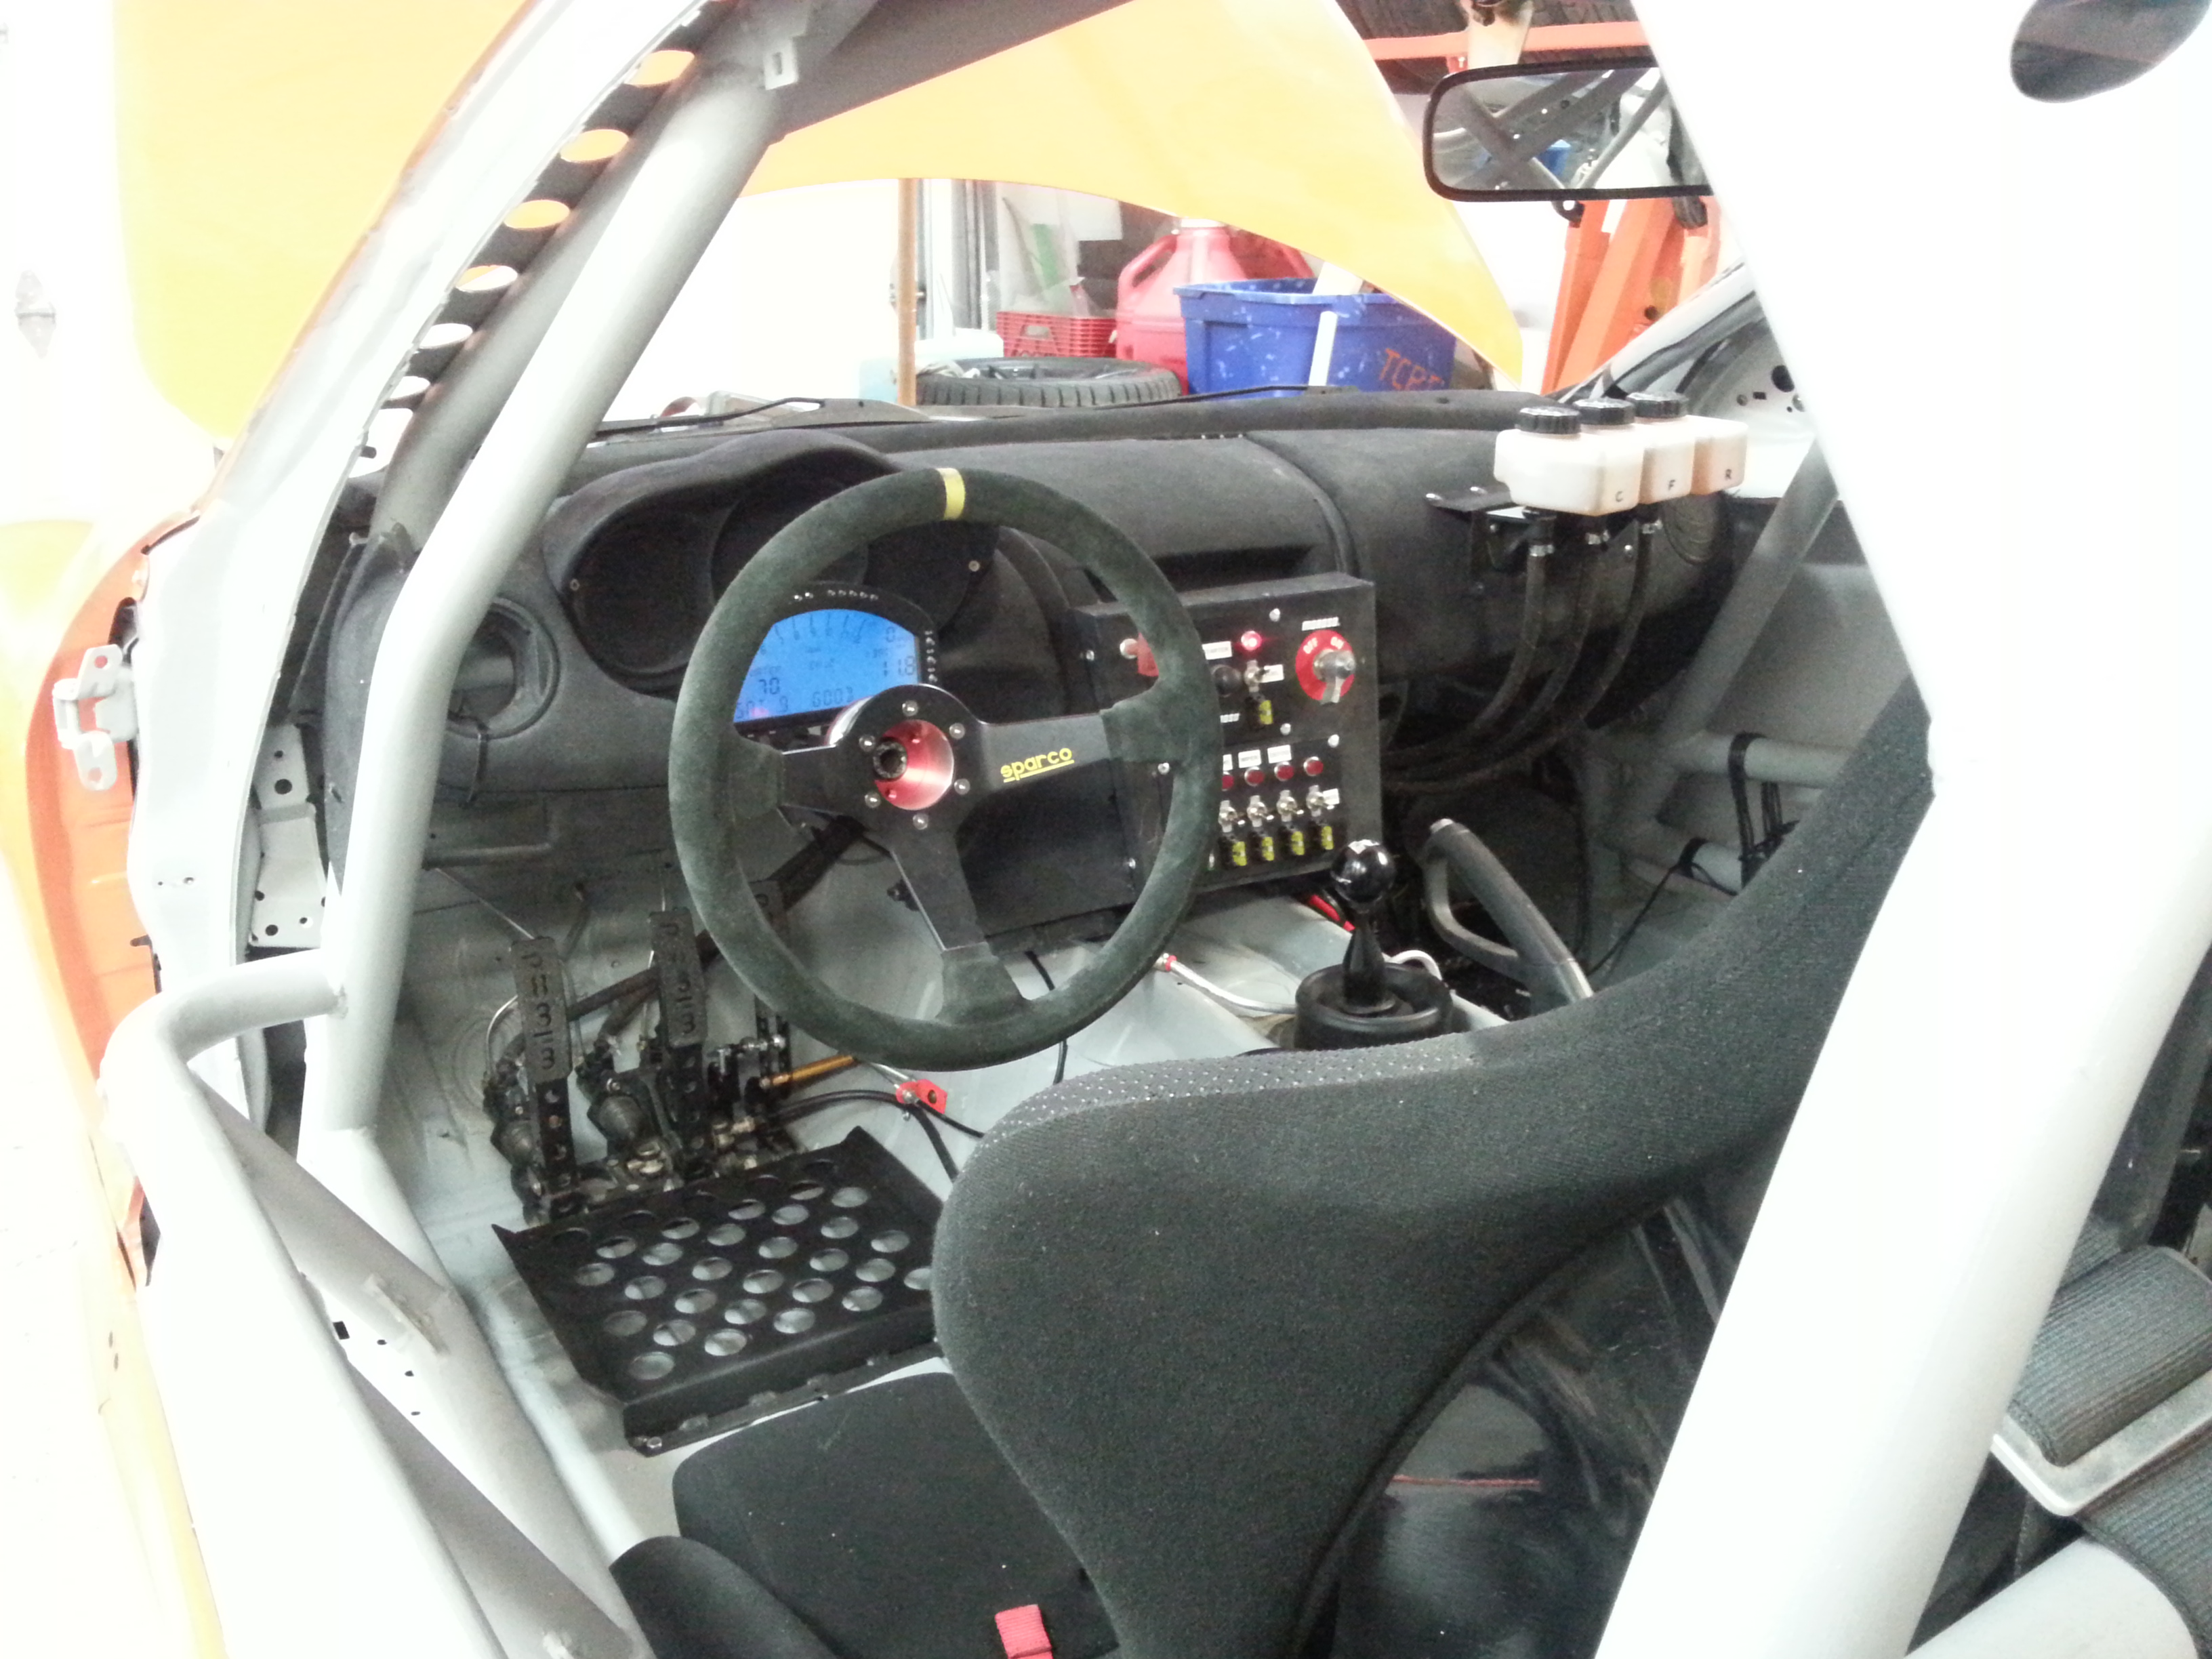 Mazda RX-8 Race Ready For Sale in Quebec City - $13000